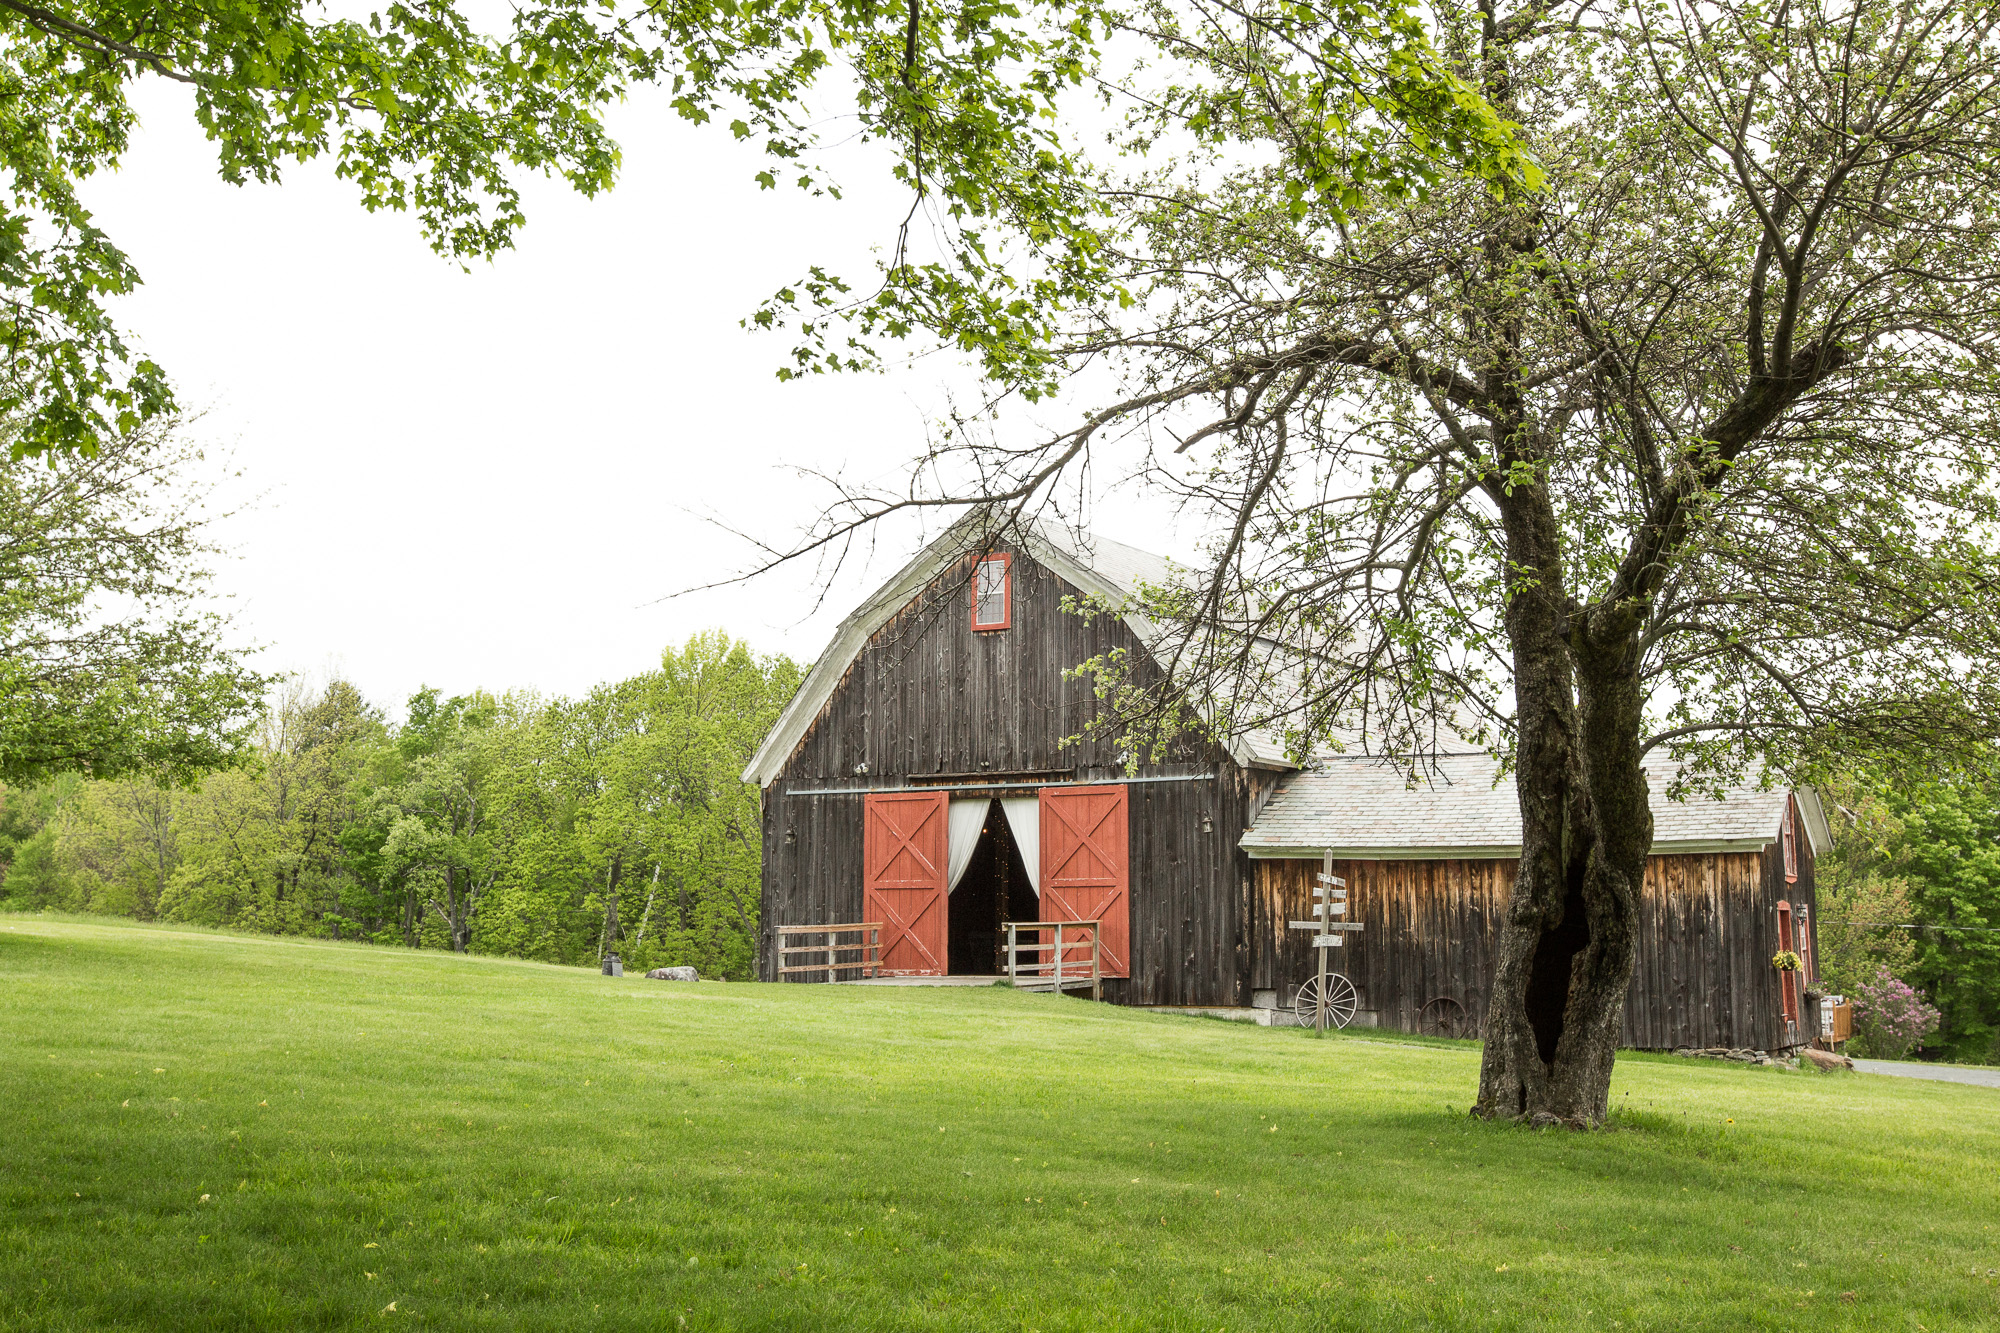 distant view of Bliss Farm's rustic barn and red doors